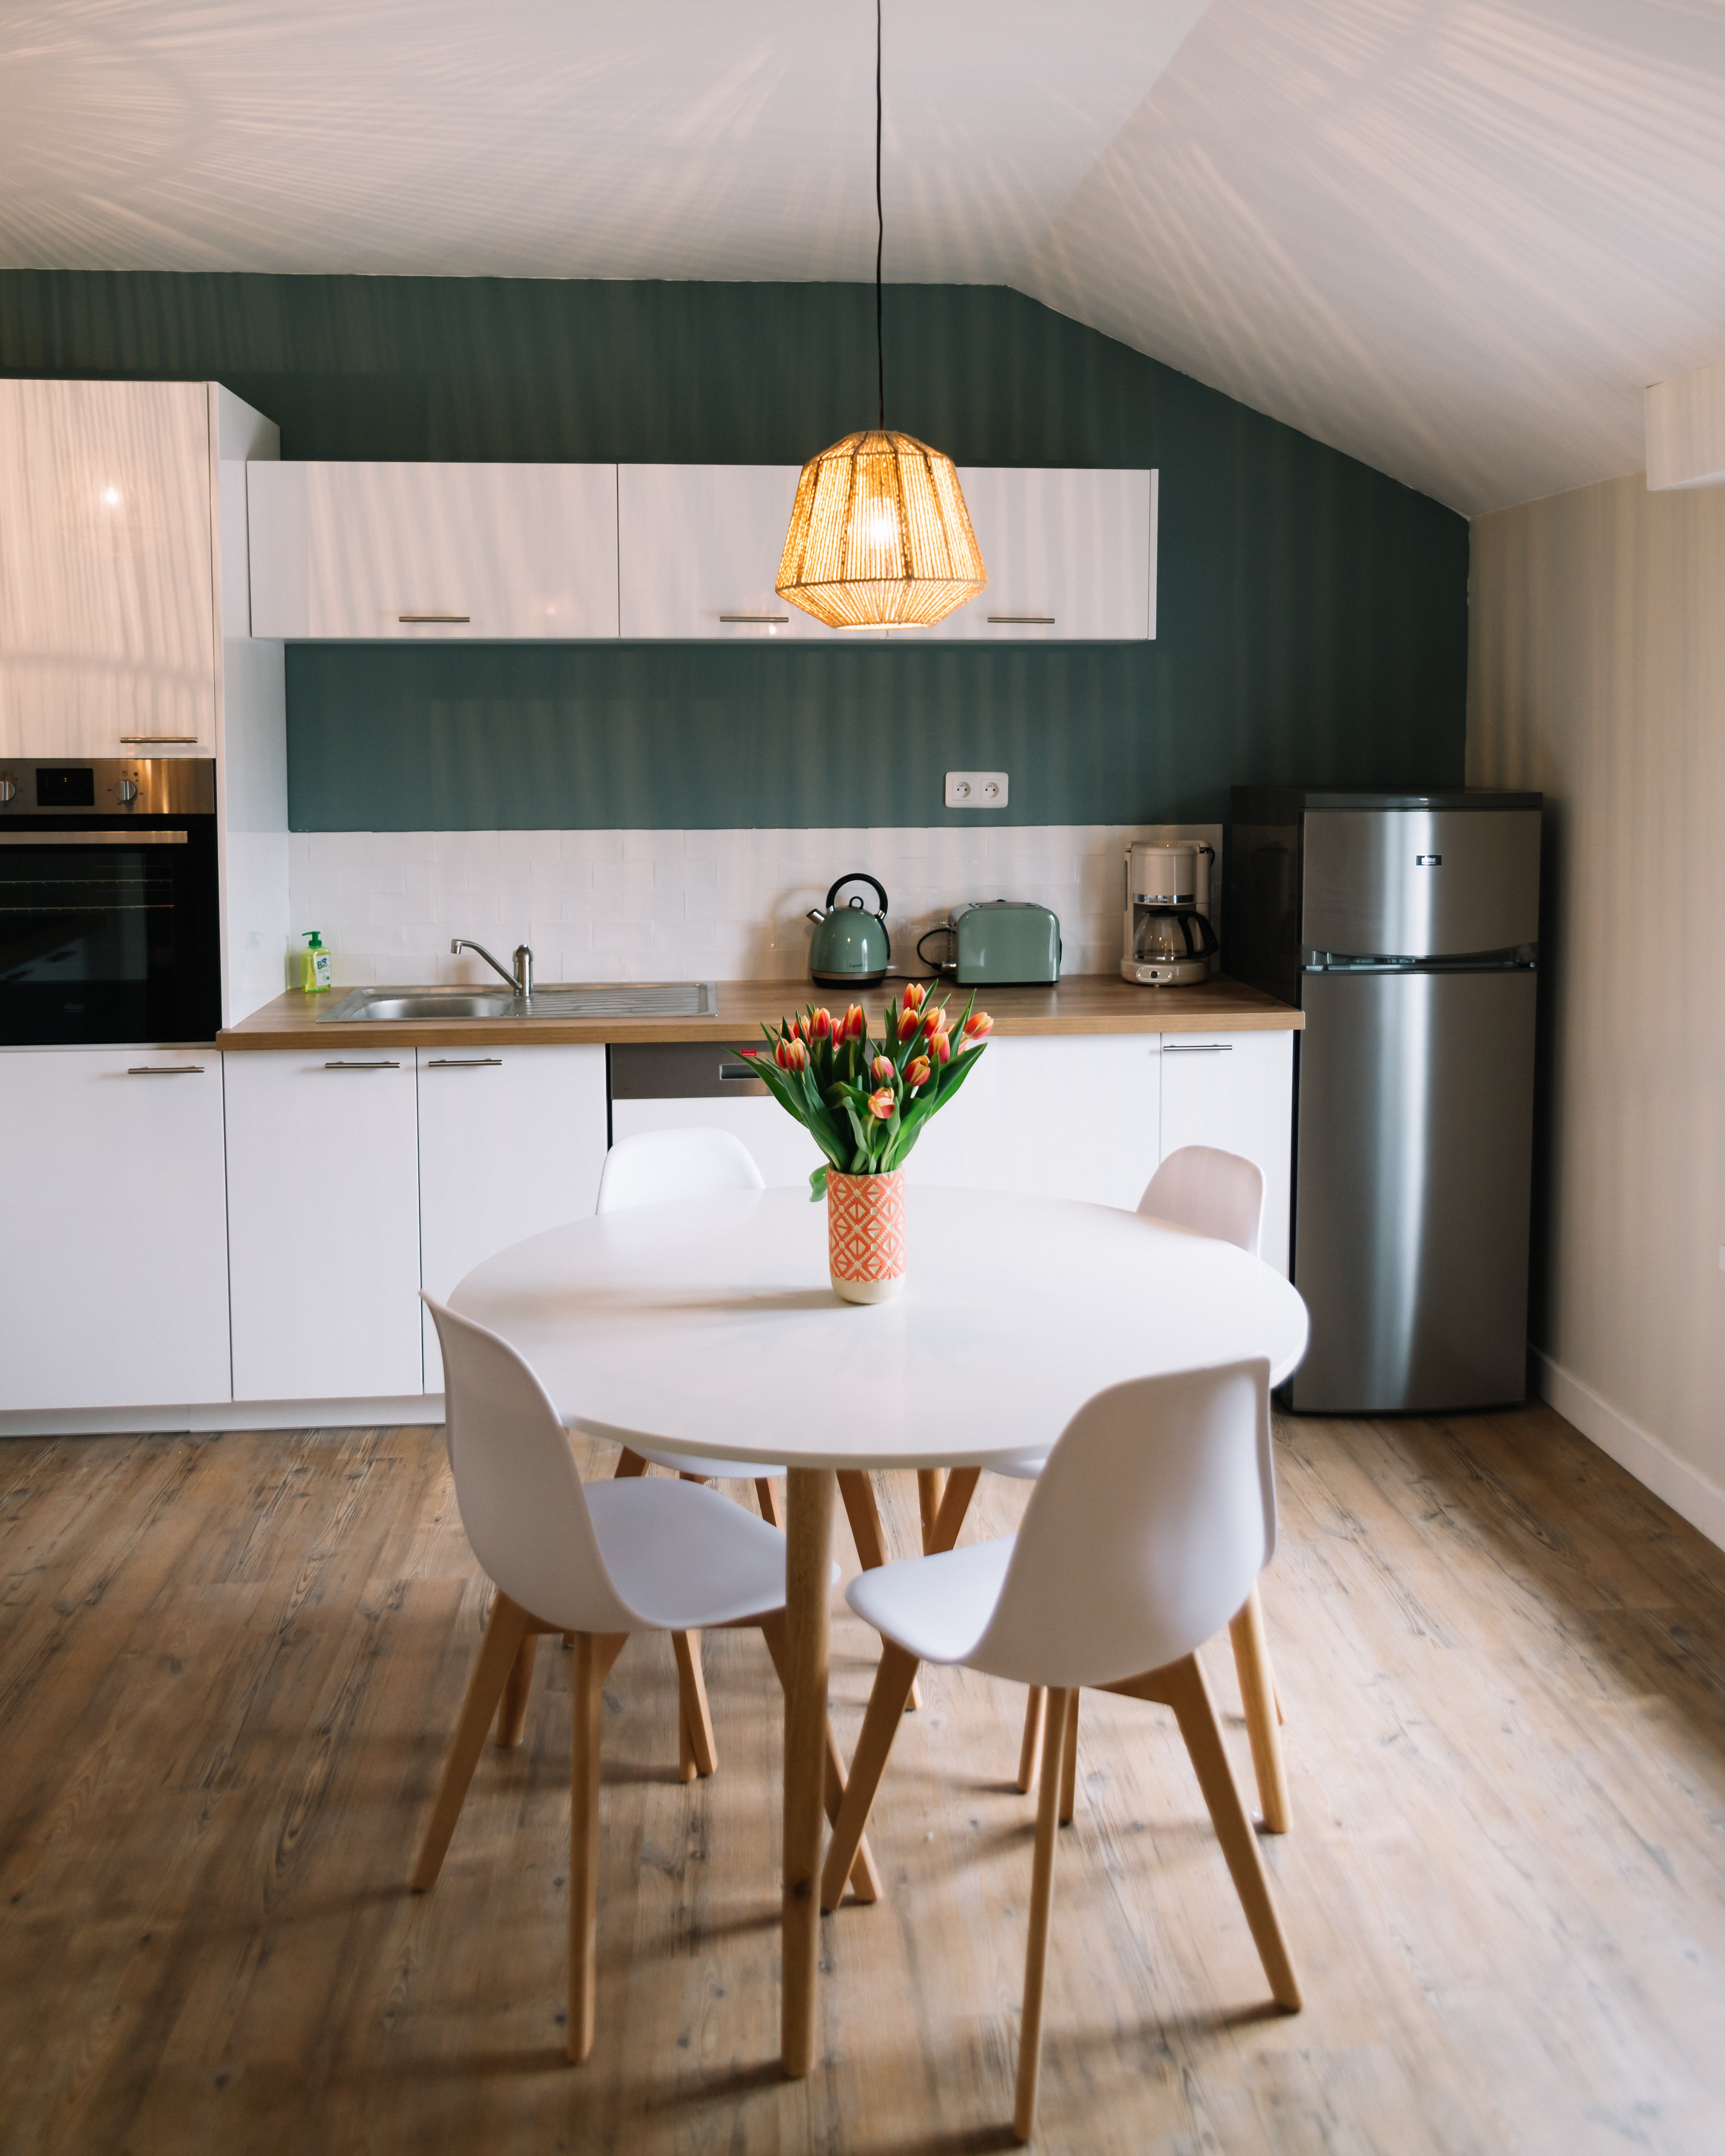 Small round dining table with four white chairs in a apartment style kitchen